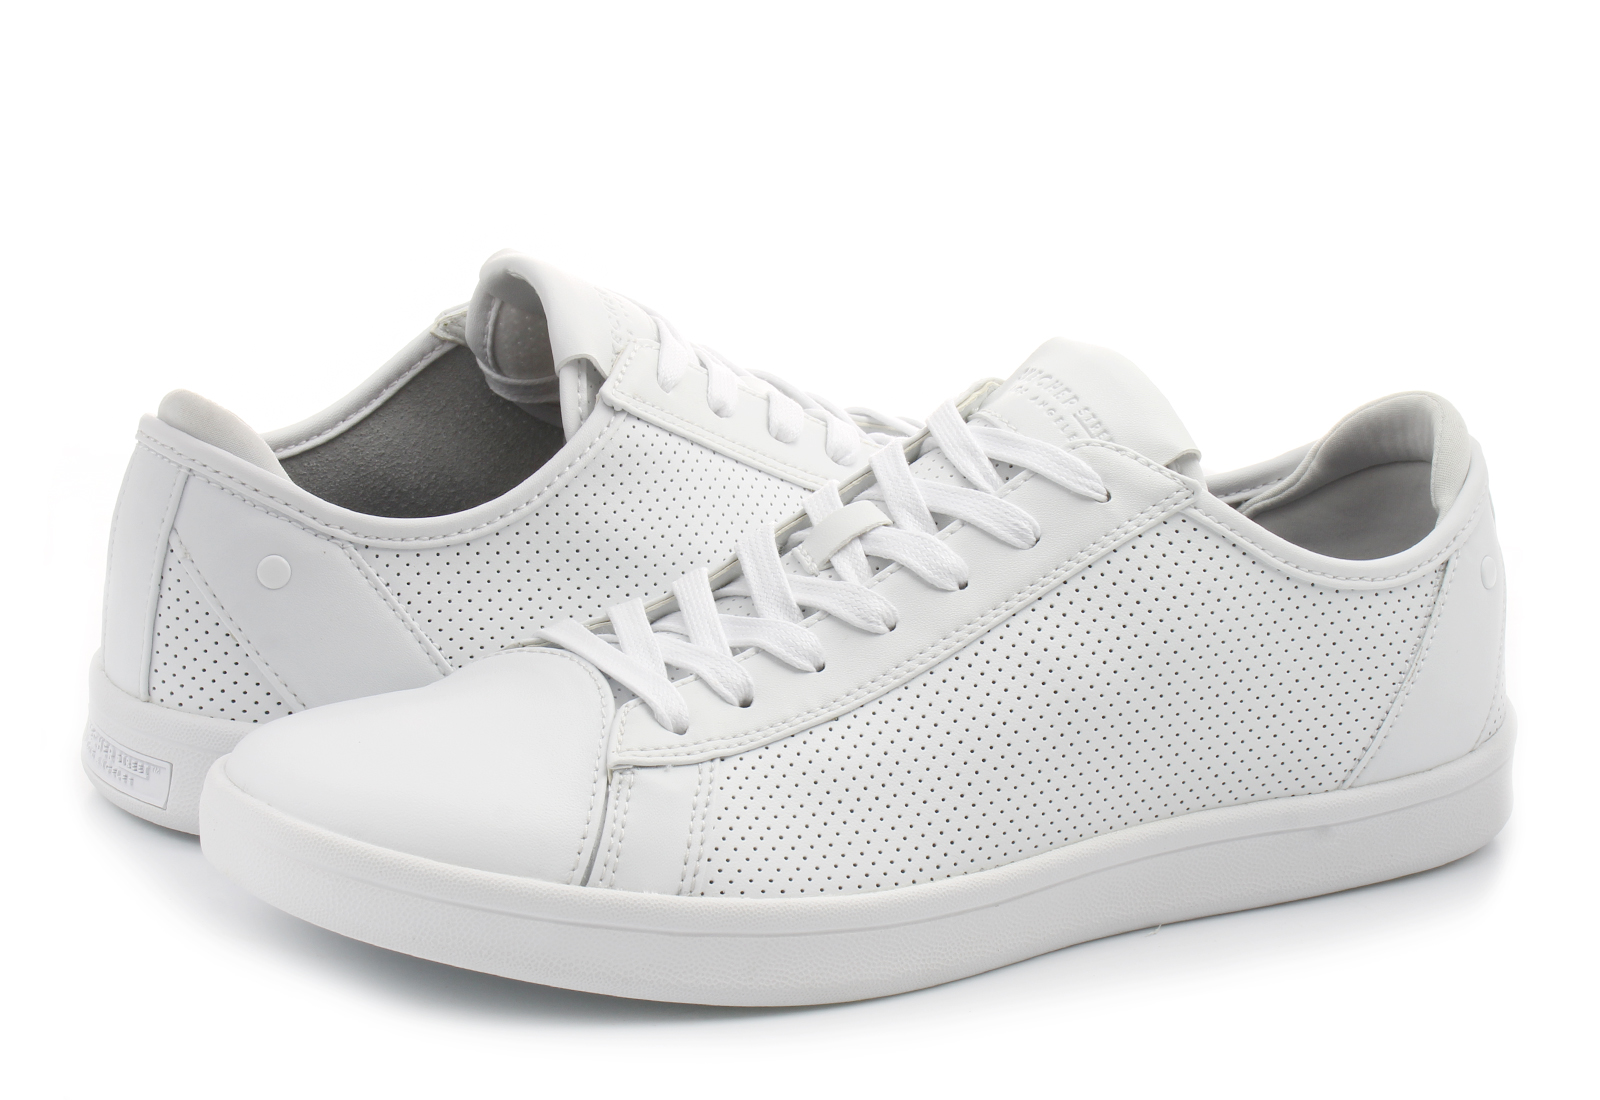 Skechers Shoes - Highland-t - 52349-wht - Online shop for sneakers ... dbe9a86220d